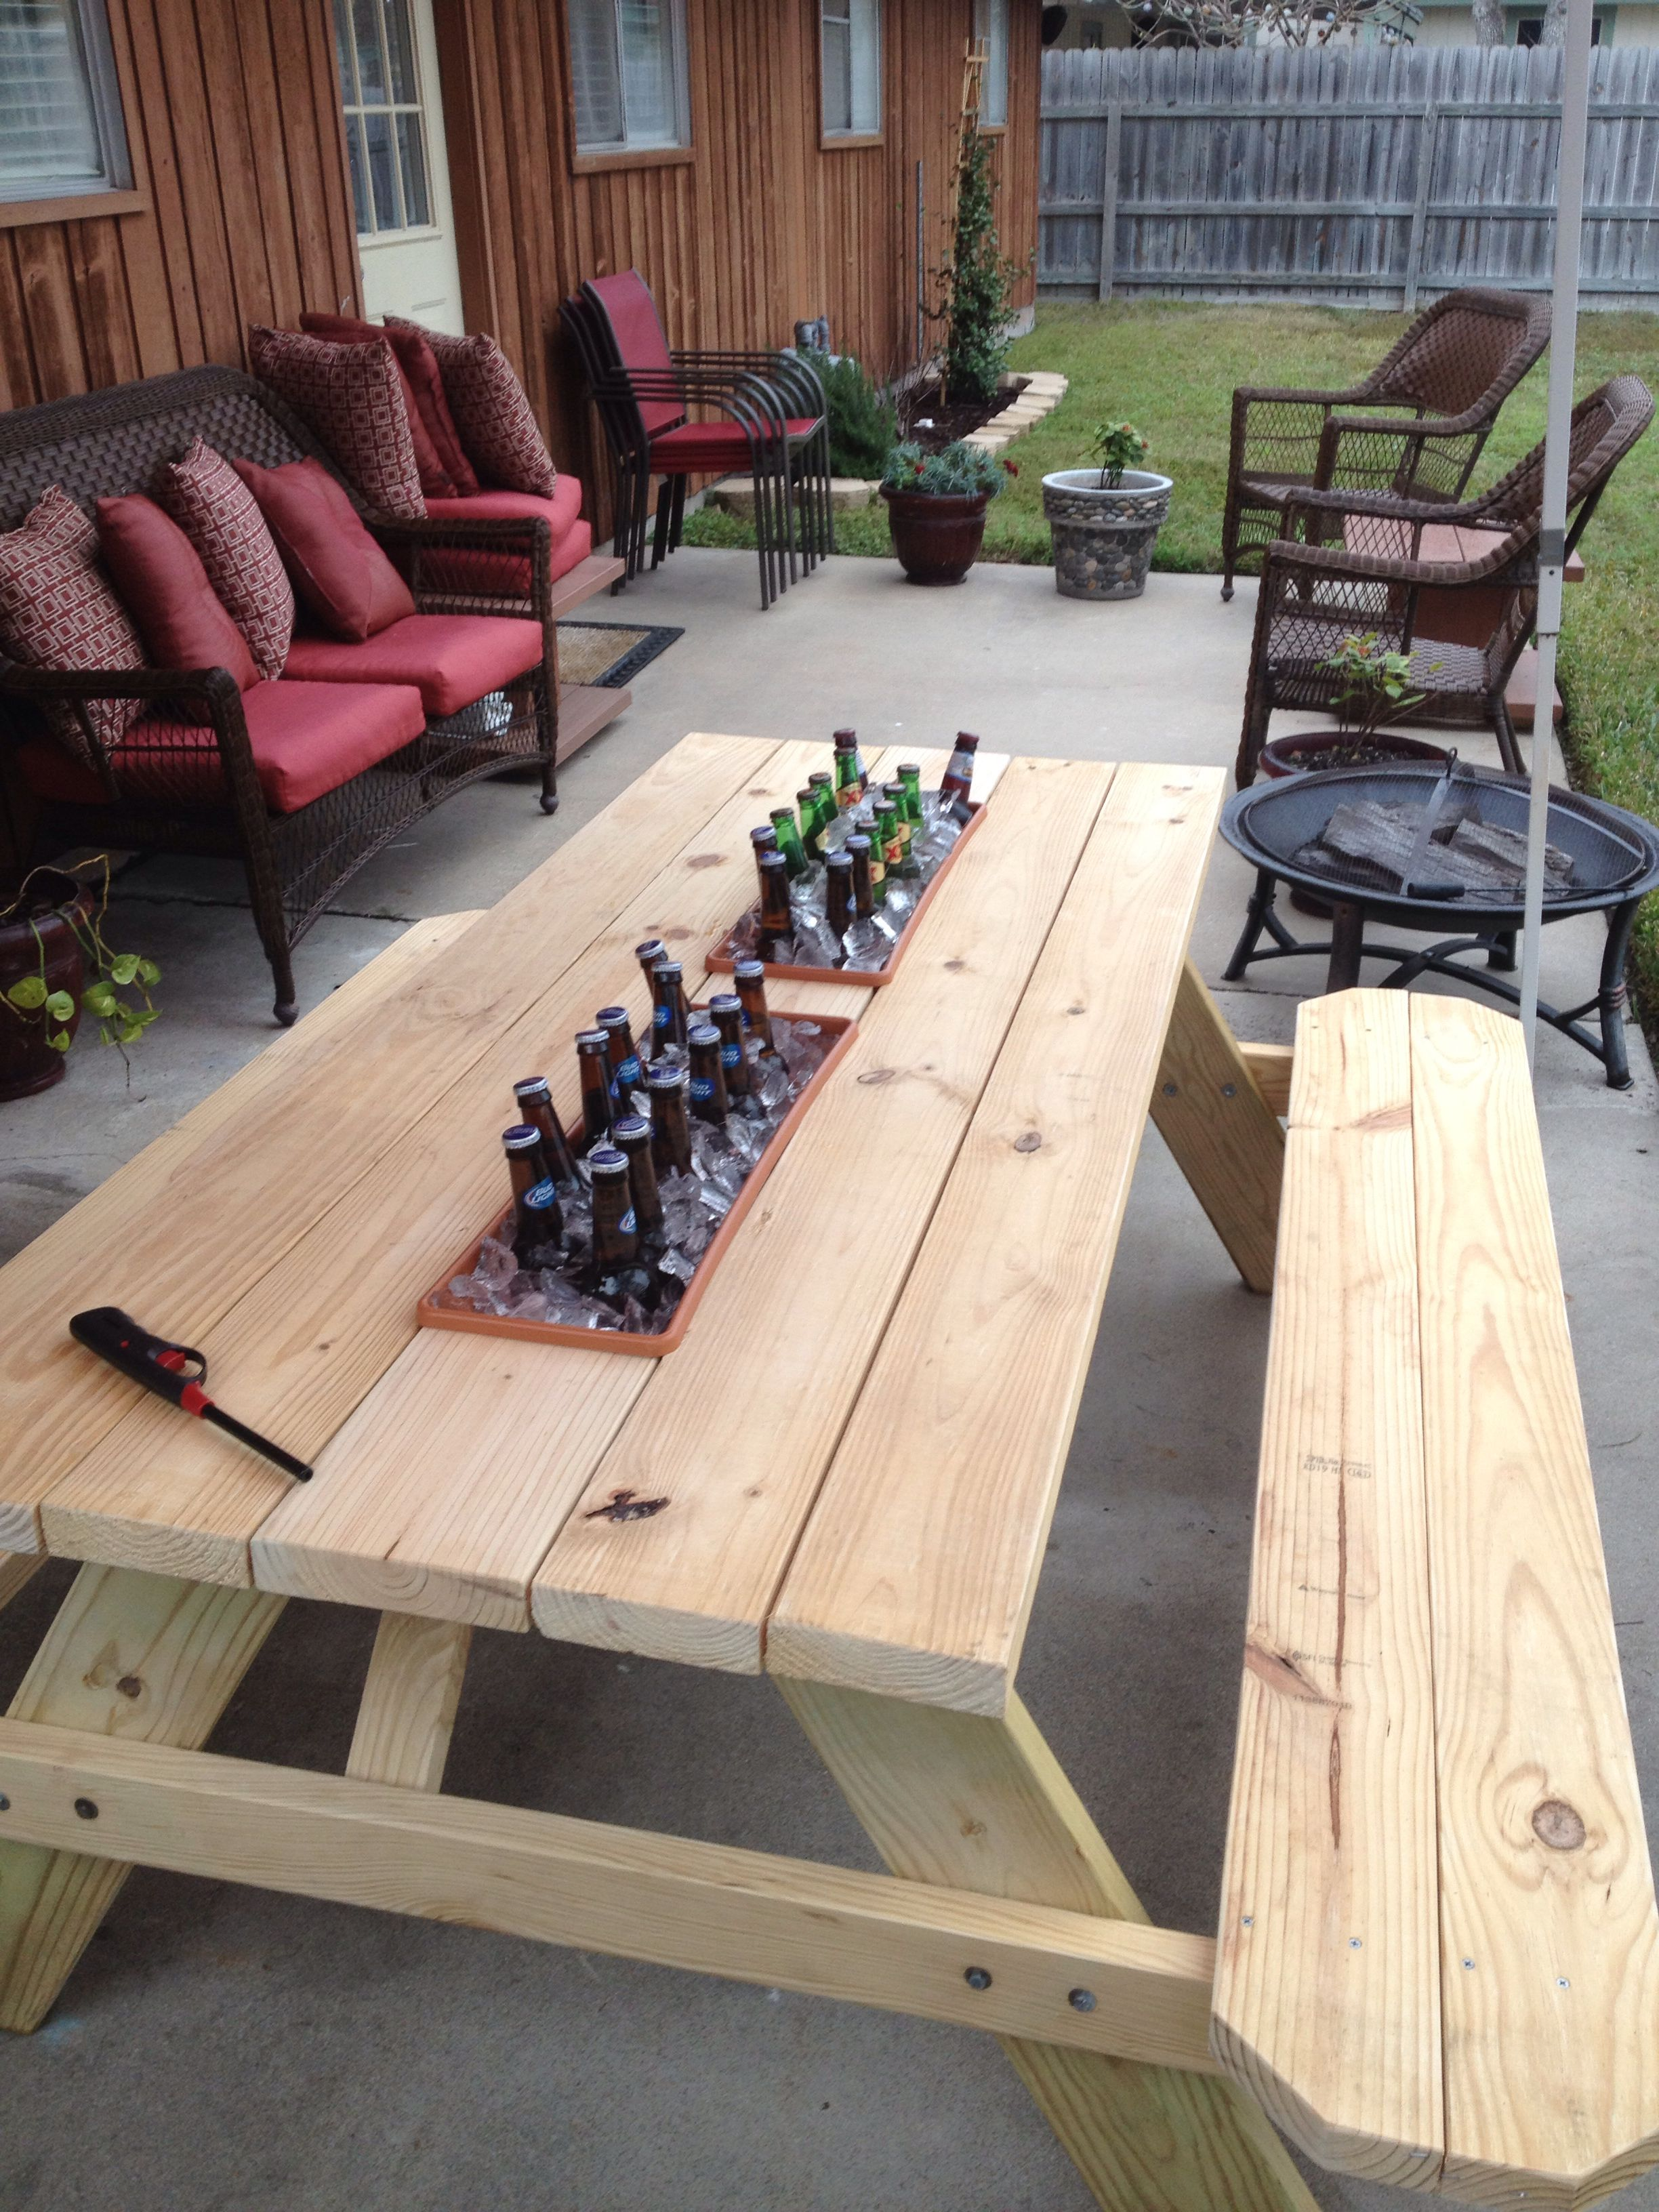 Nailed It Wood Table With Beer Cooler